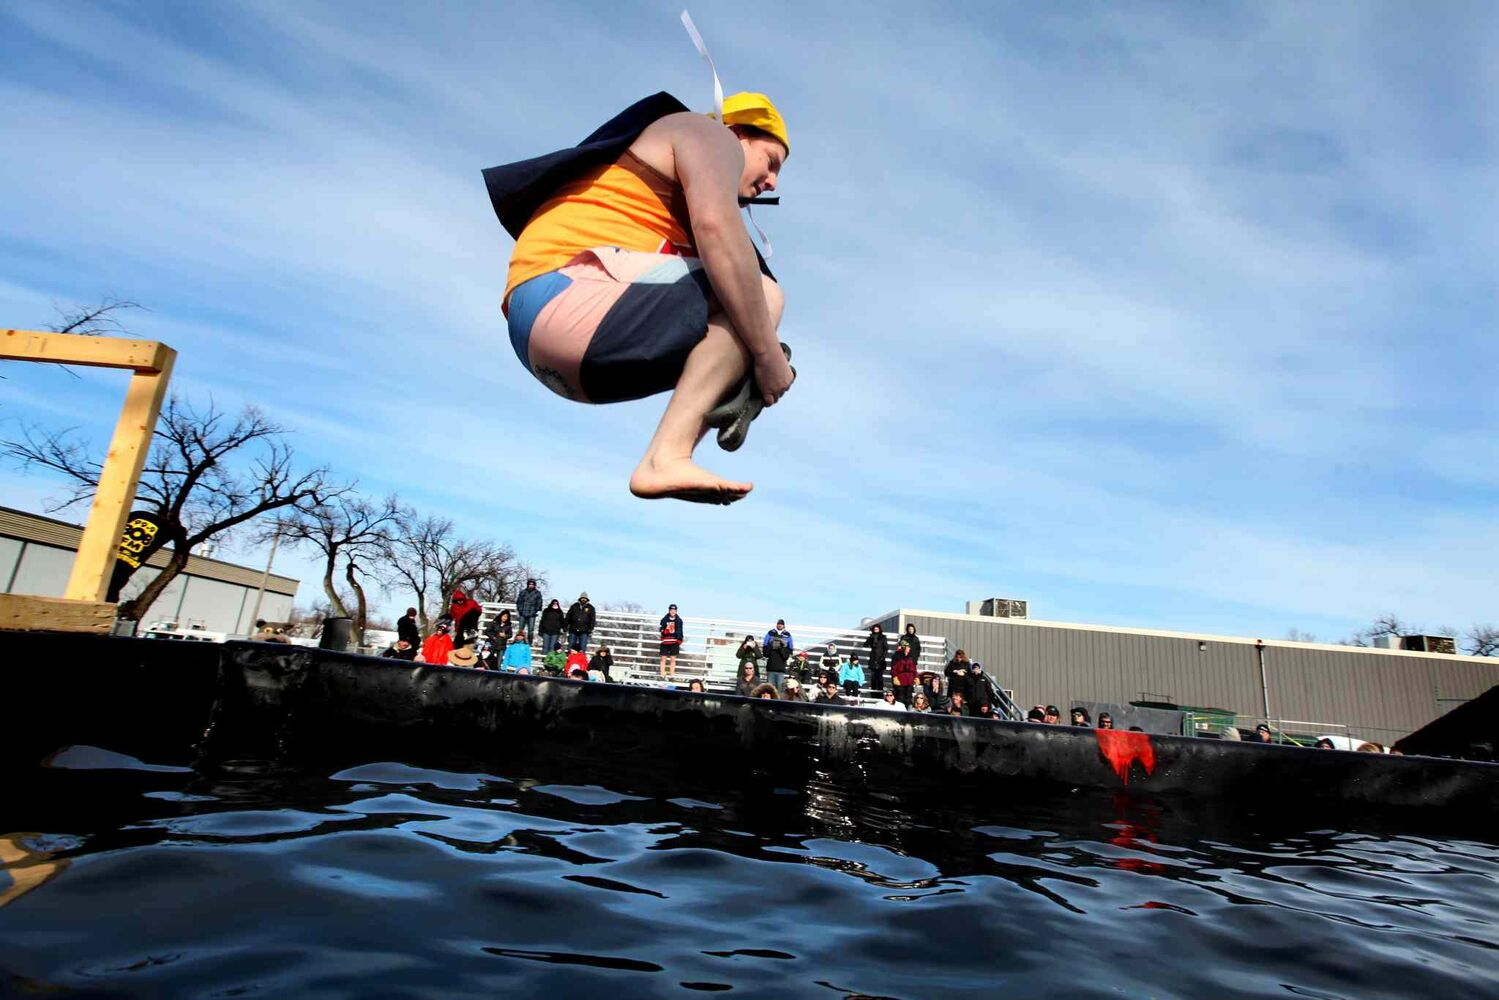 Darren Anderson does a cannonball jump into a BFI bin filled with water at the Indian Metis Friendship Centre Saturday afternoon as part of the Polar Plunge, a fundraiser for Special Olympics Manitoba.